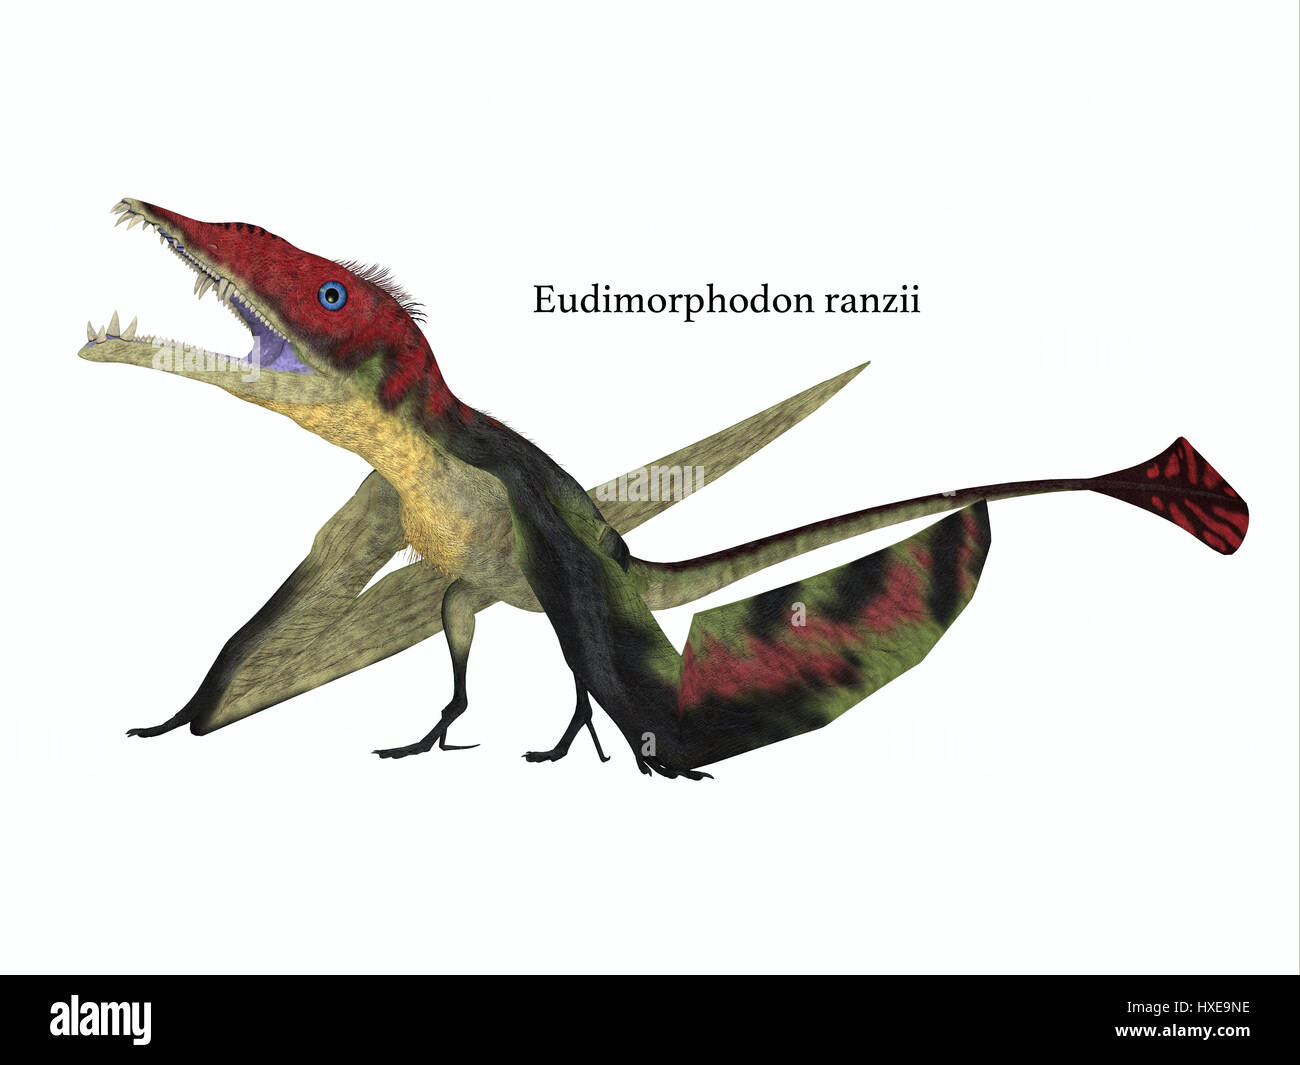 The carnivorous Eudimorphodon was a pterosaur flying reptile that lived in Italy in the Triassic Period. - Stock Image